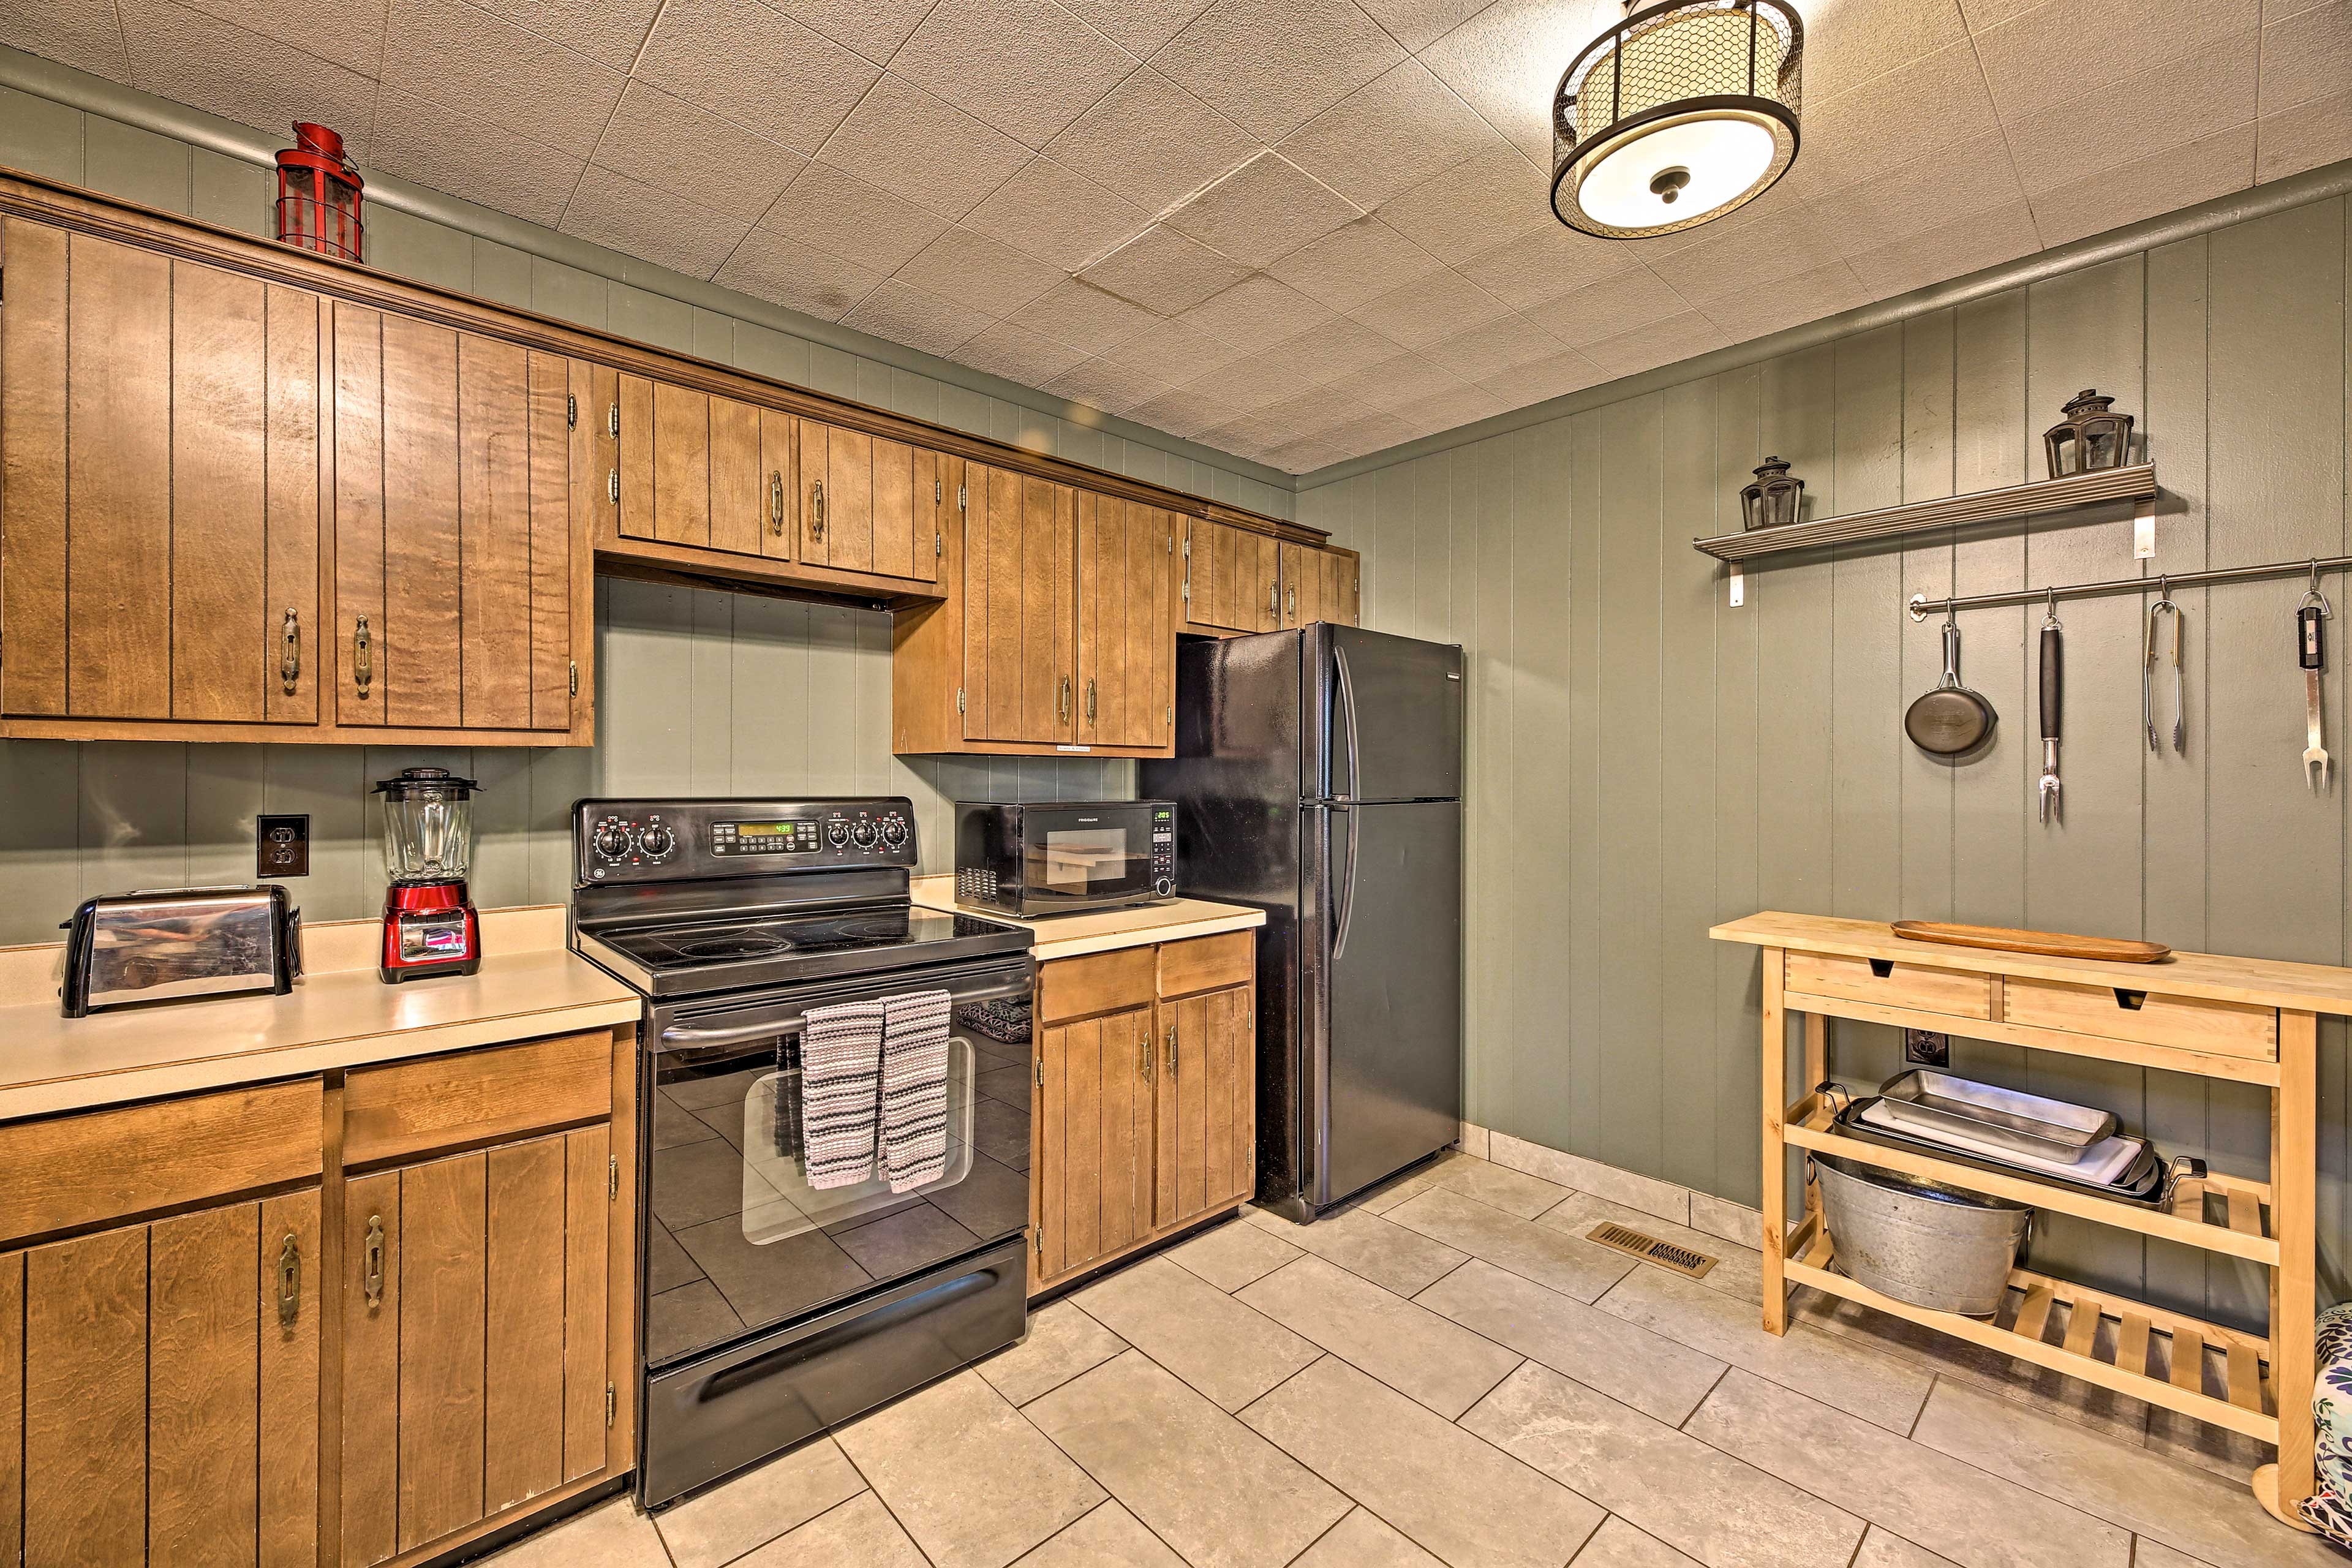 Kitchen | Well-Equipped | Cooking Basics | Toaster | Blender